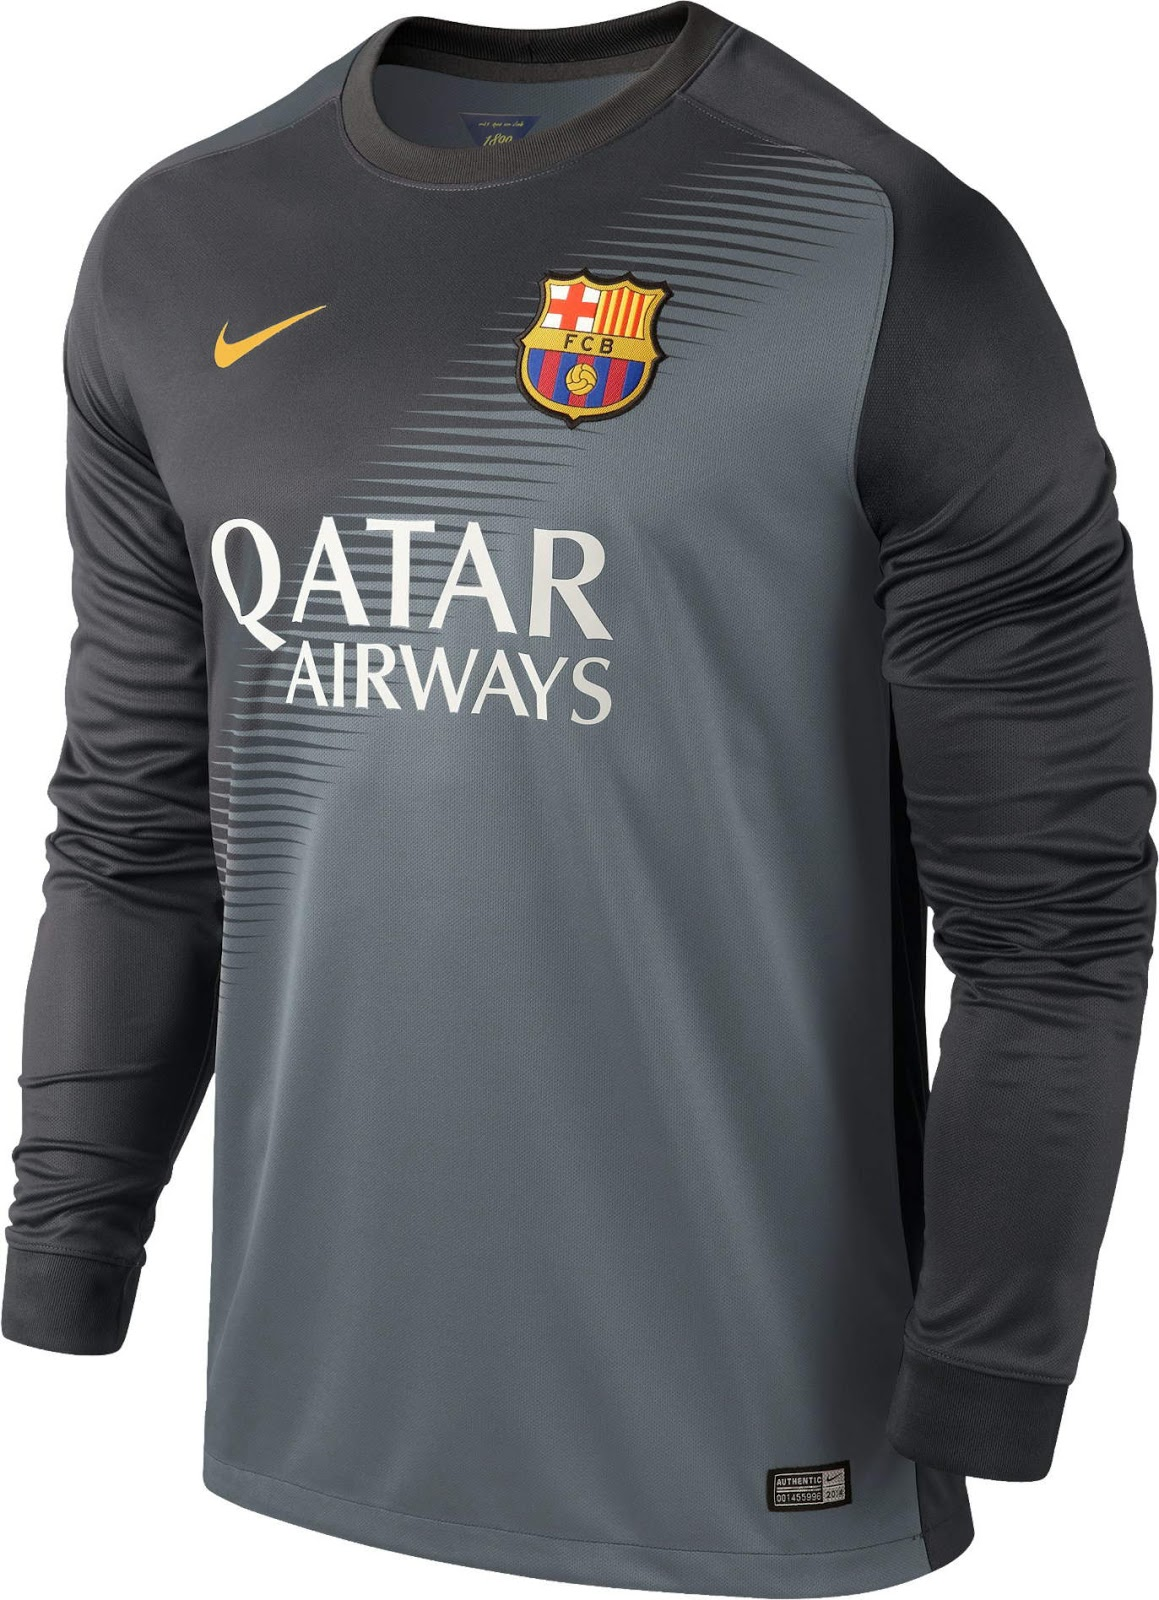 Fc barcelona 14 15 2014 15 home away and third kits footy